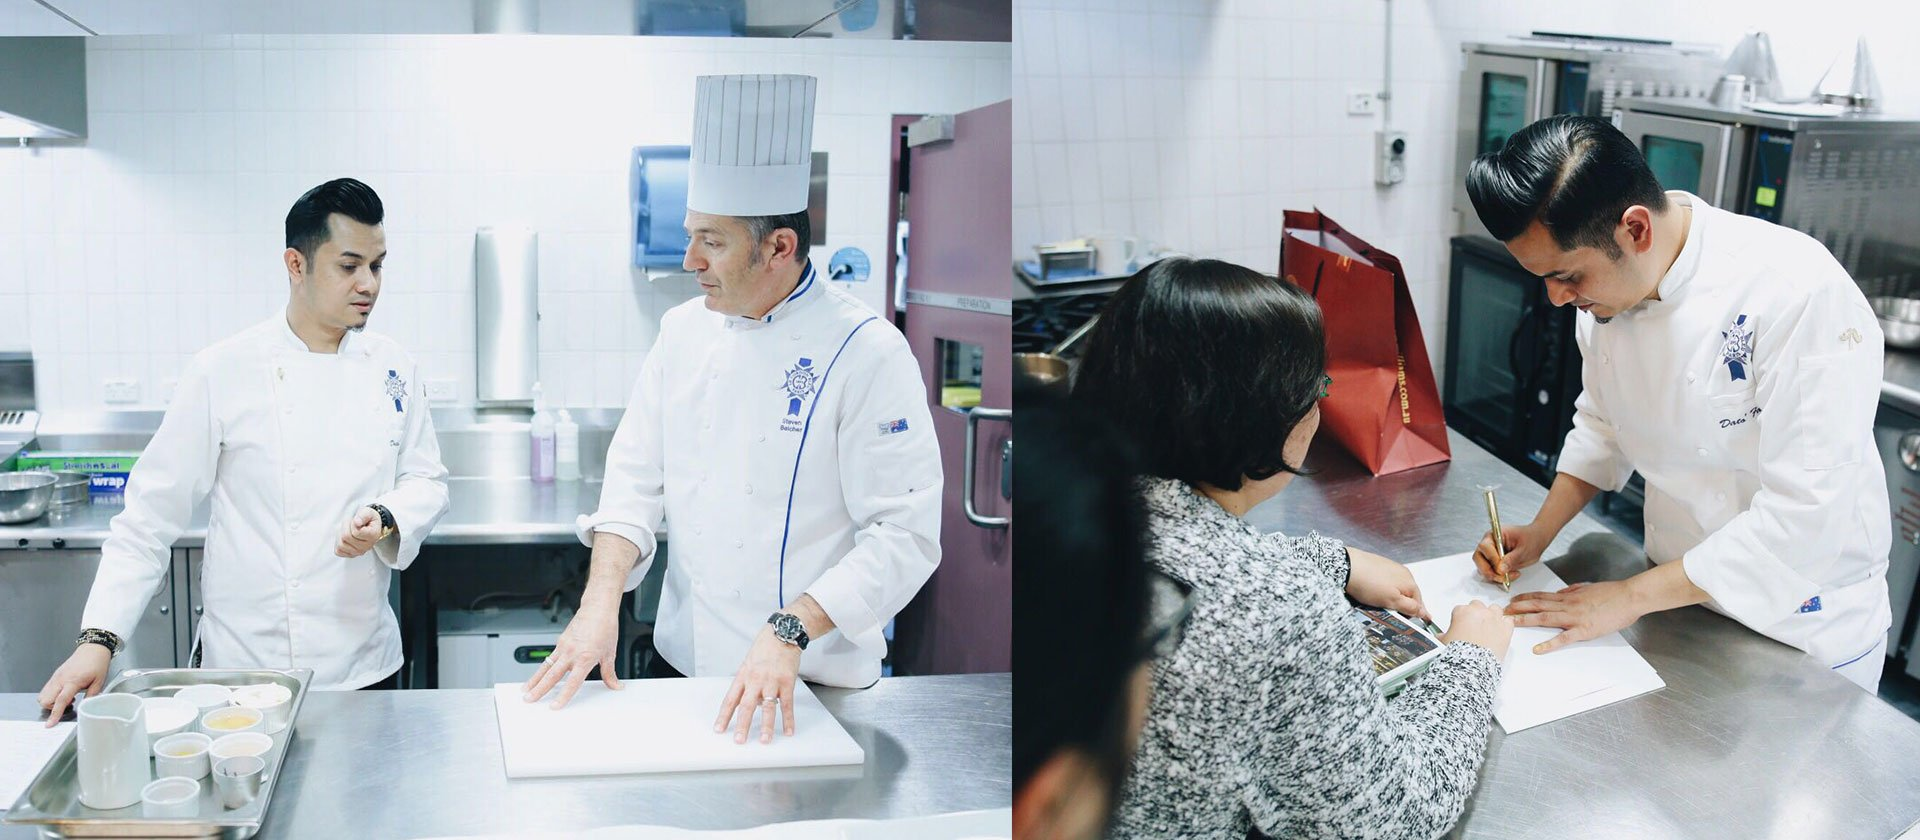 Le Cordon Bleu Celebrity Alumni Dato' Fazley Yaakob conducts a grand performance in cooking & singing